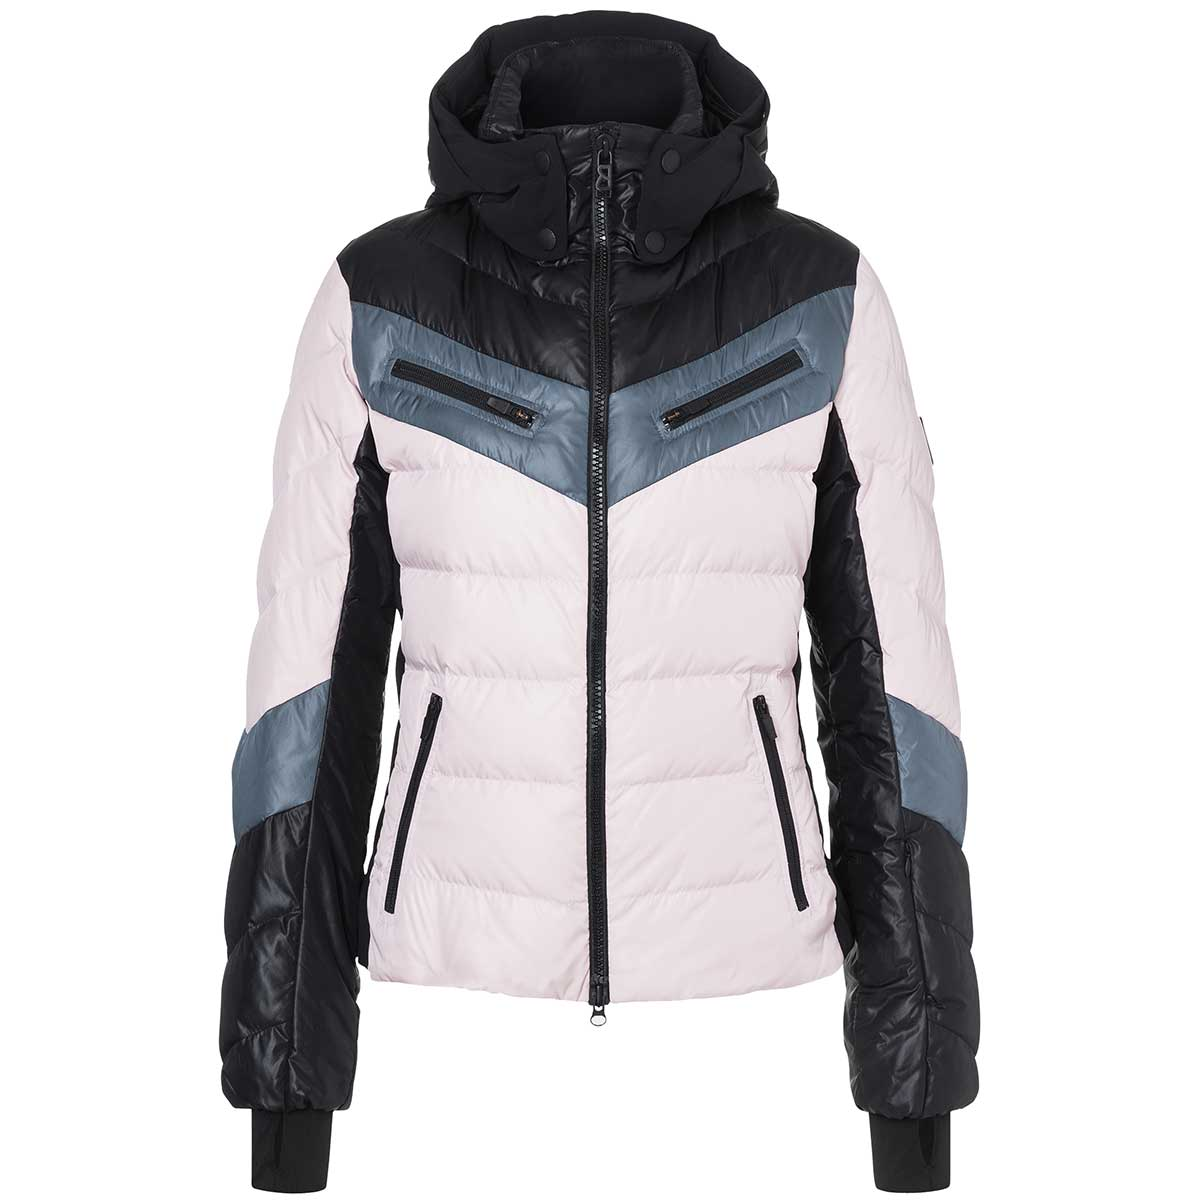 Bogner Fire+Ice Farina-D women's jacket in dusty rose and black